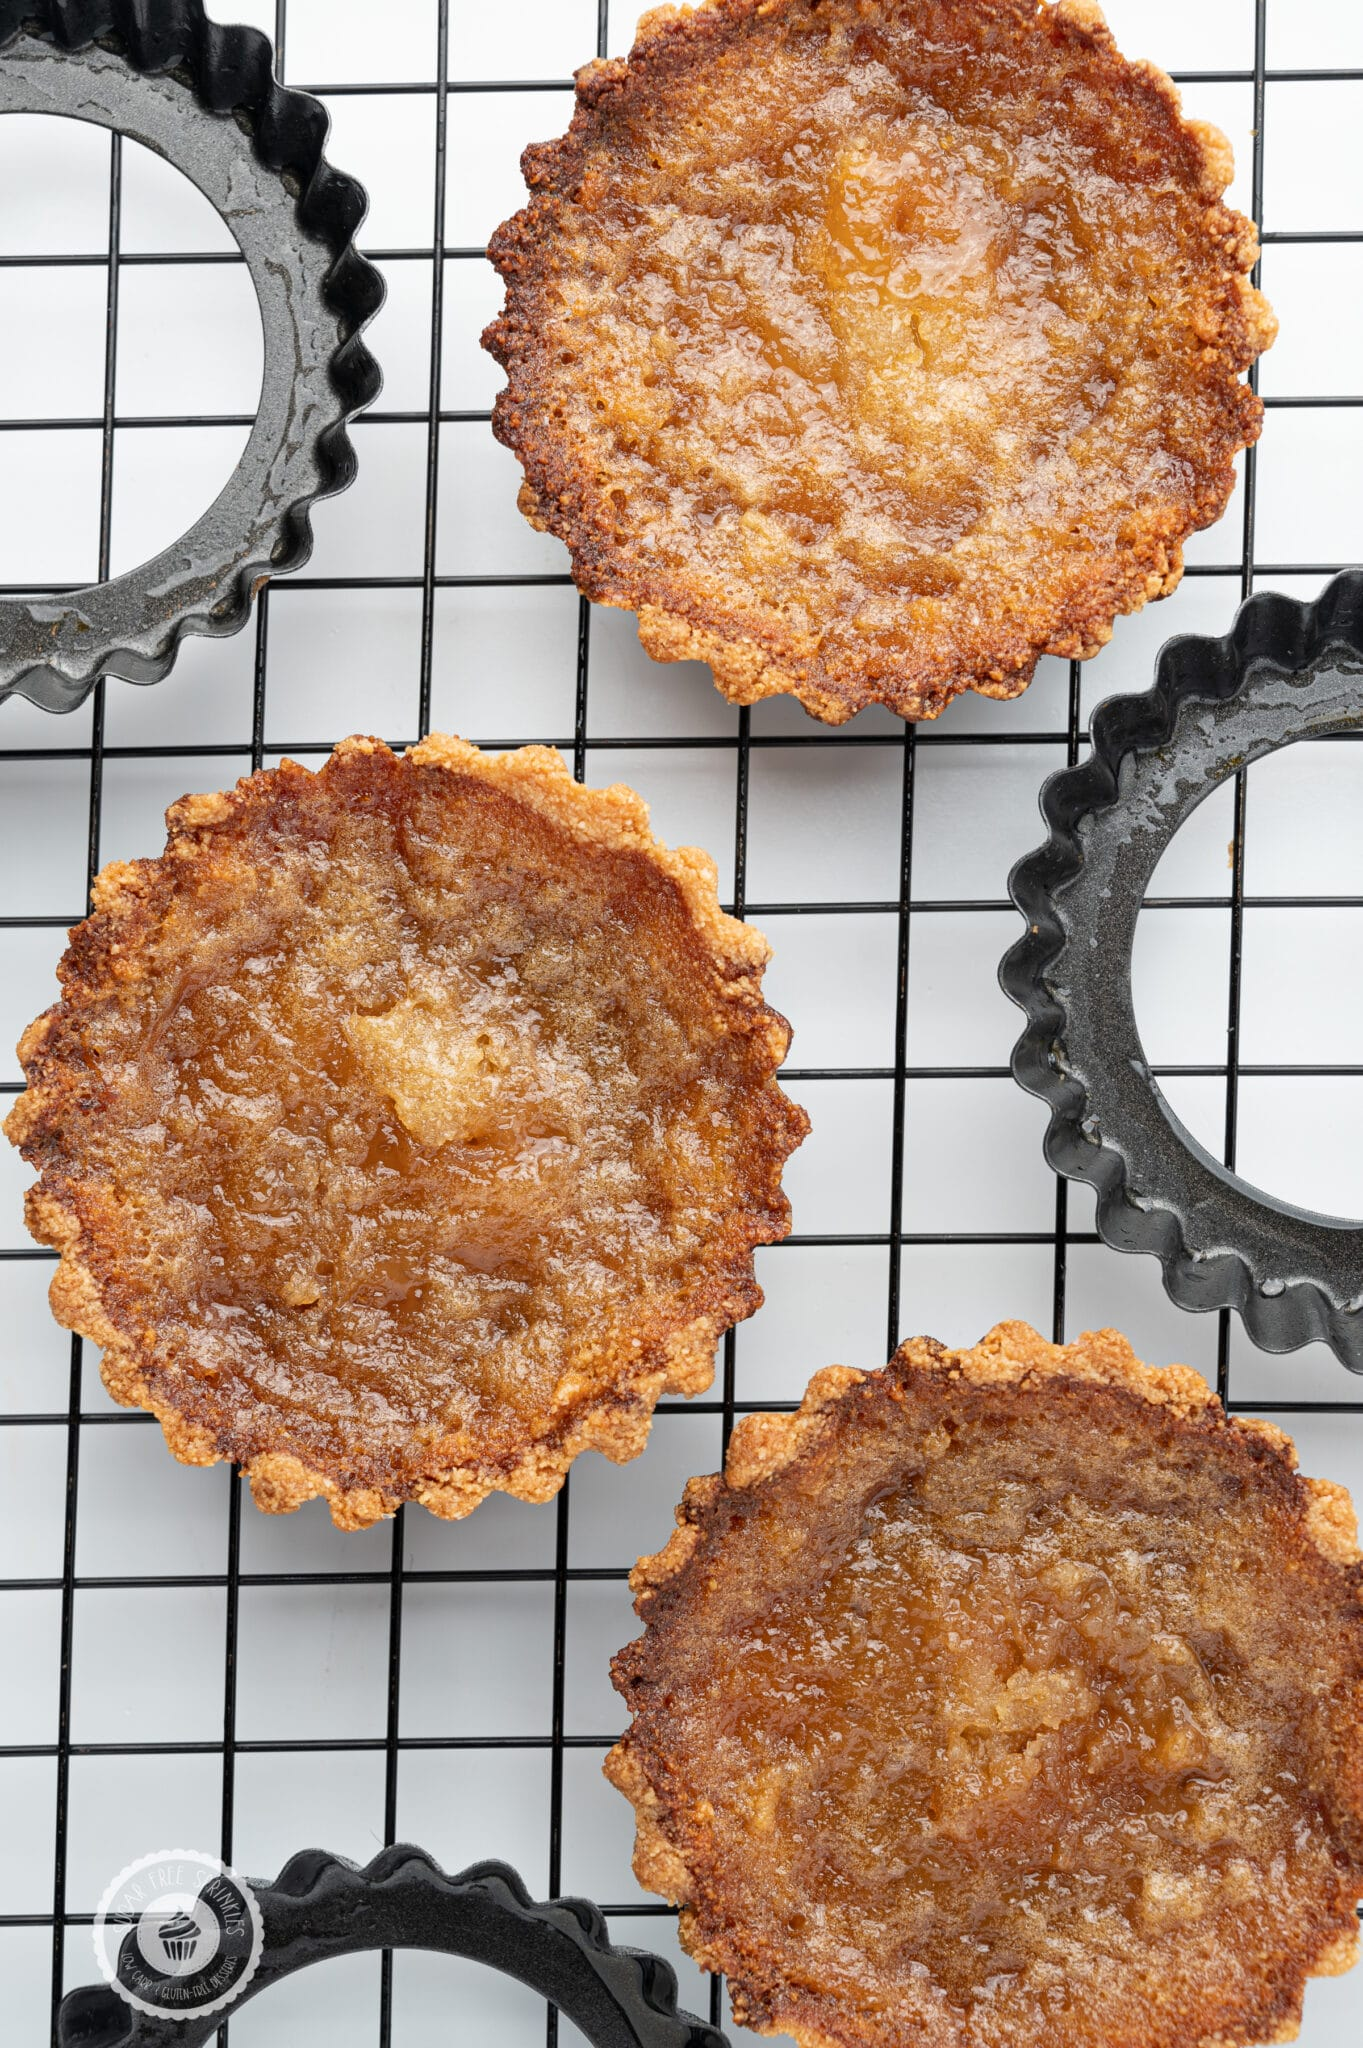 Sugar-free butter tarts cooling a black cooling rack with the metal tart pans scattered around.